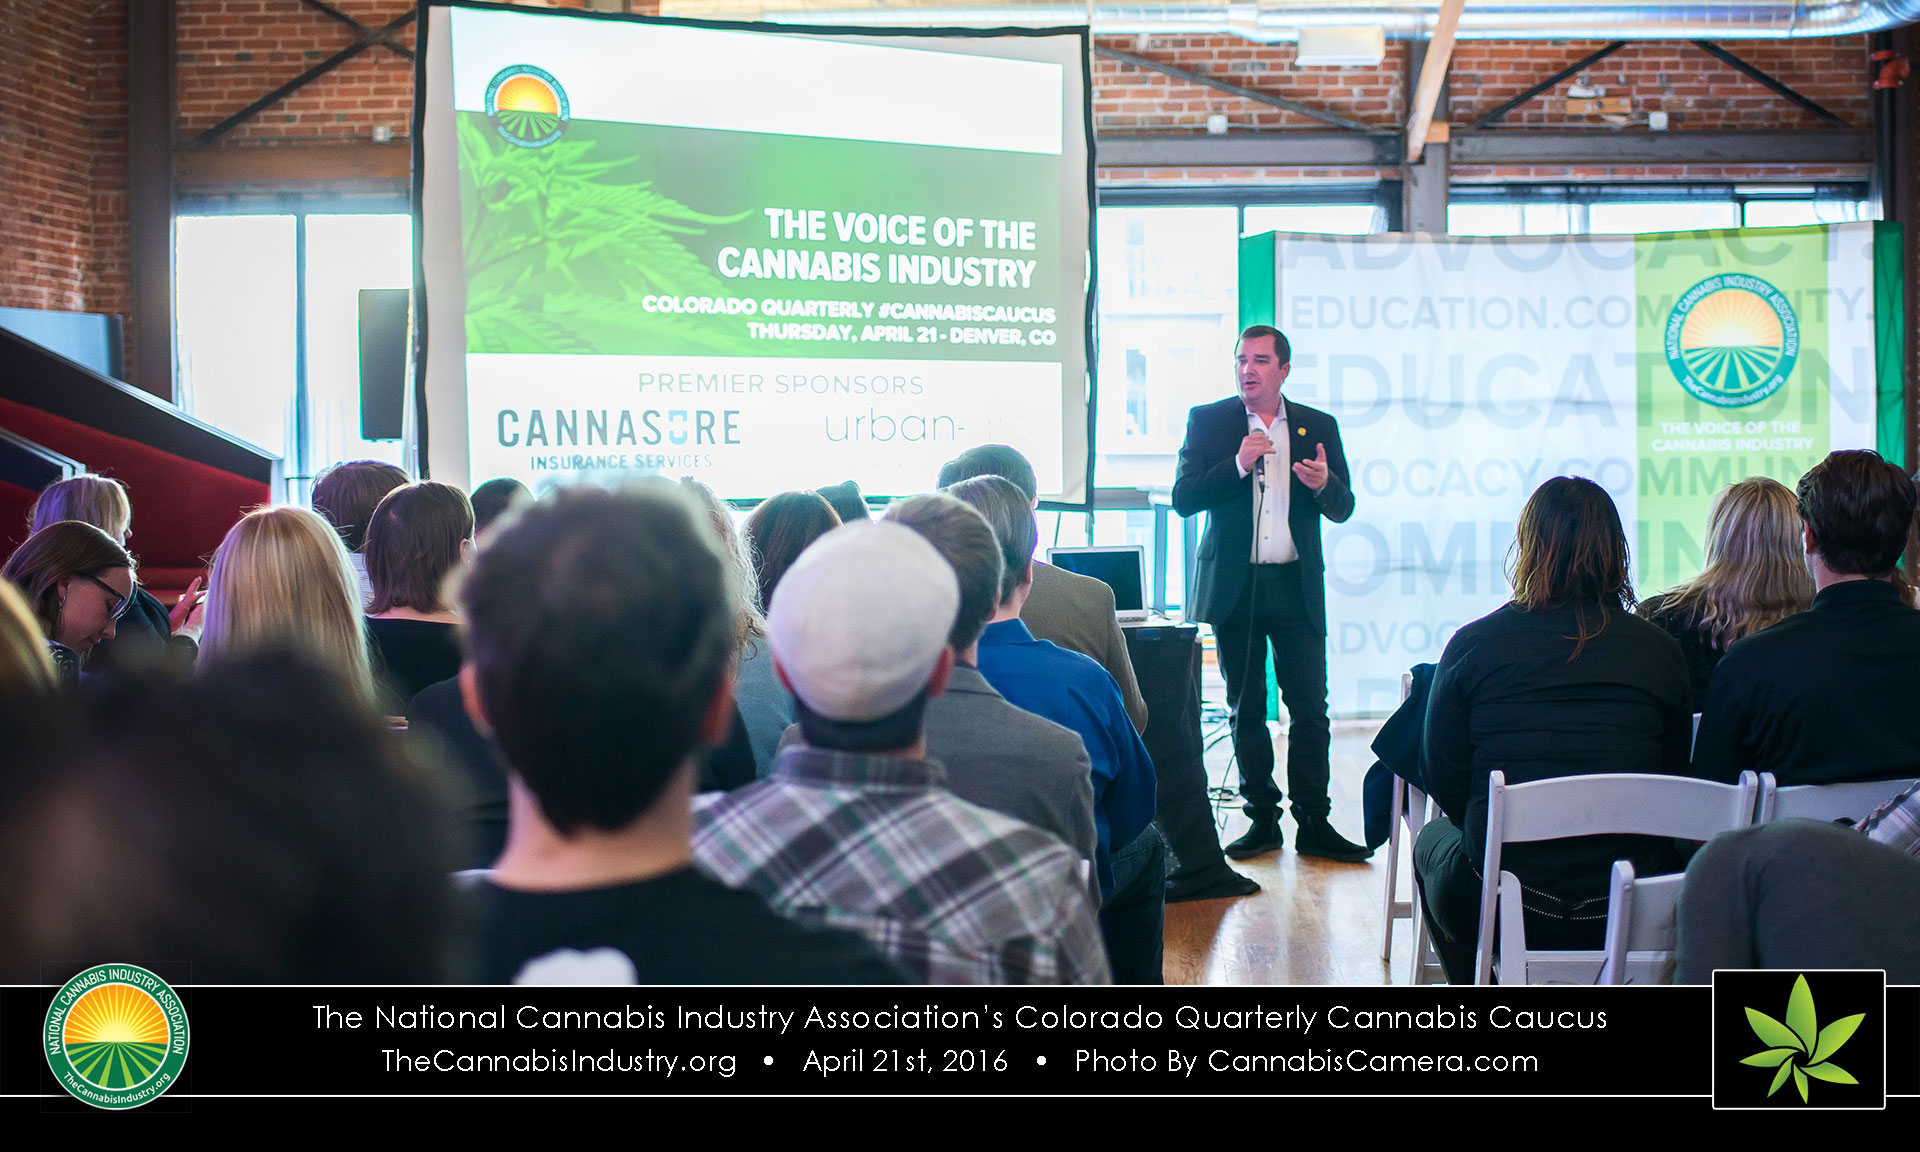 NCIA's Colorado Quarterly Cannabis Caucus with Dana Rohrabacher